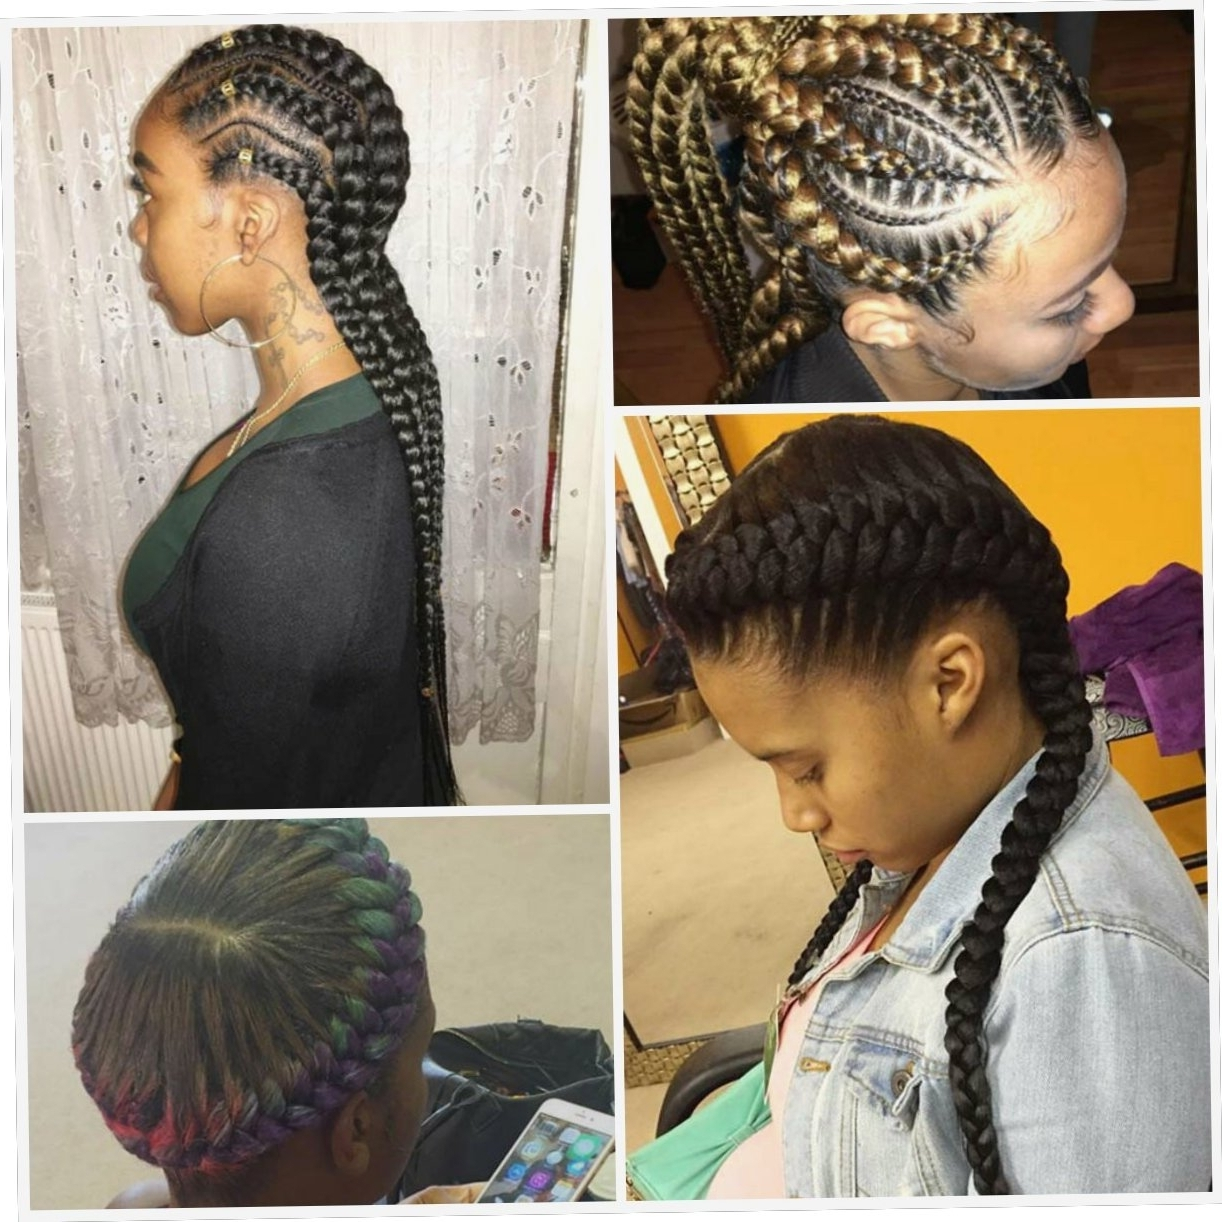 Braid Hairstyles : Creative Braided Cornrow Hairstyles Download Intended For Popular Creative Cornrows Hairstyles (View 4 of 15)